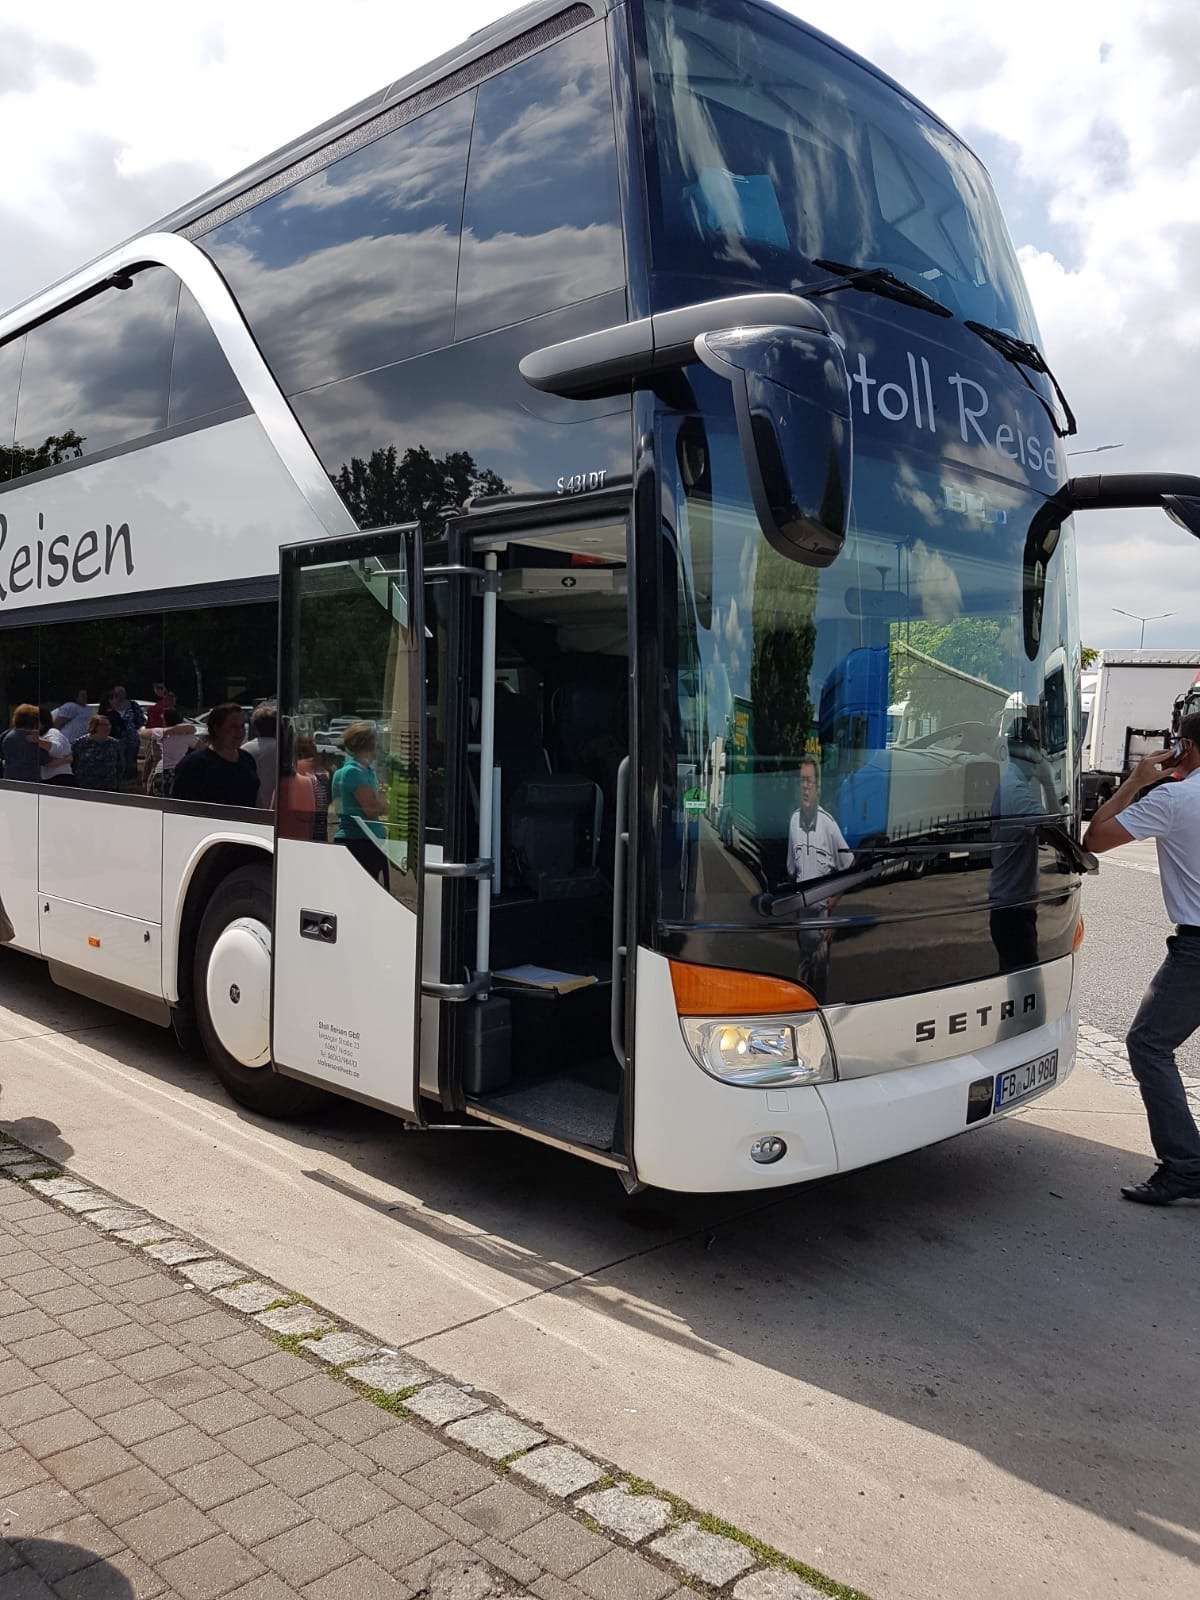 Sisters of the Friedrichsdorf Germany Stake traveled by double-decker bus to attend the Freiberg Germany Temple during their May 2018 temple trip.